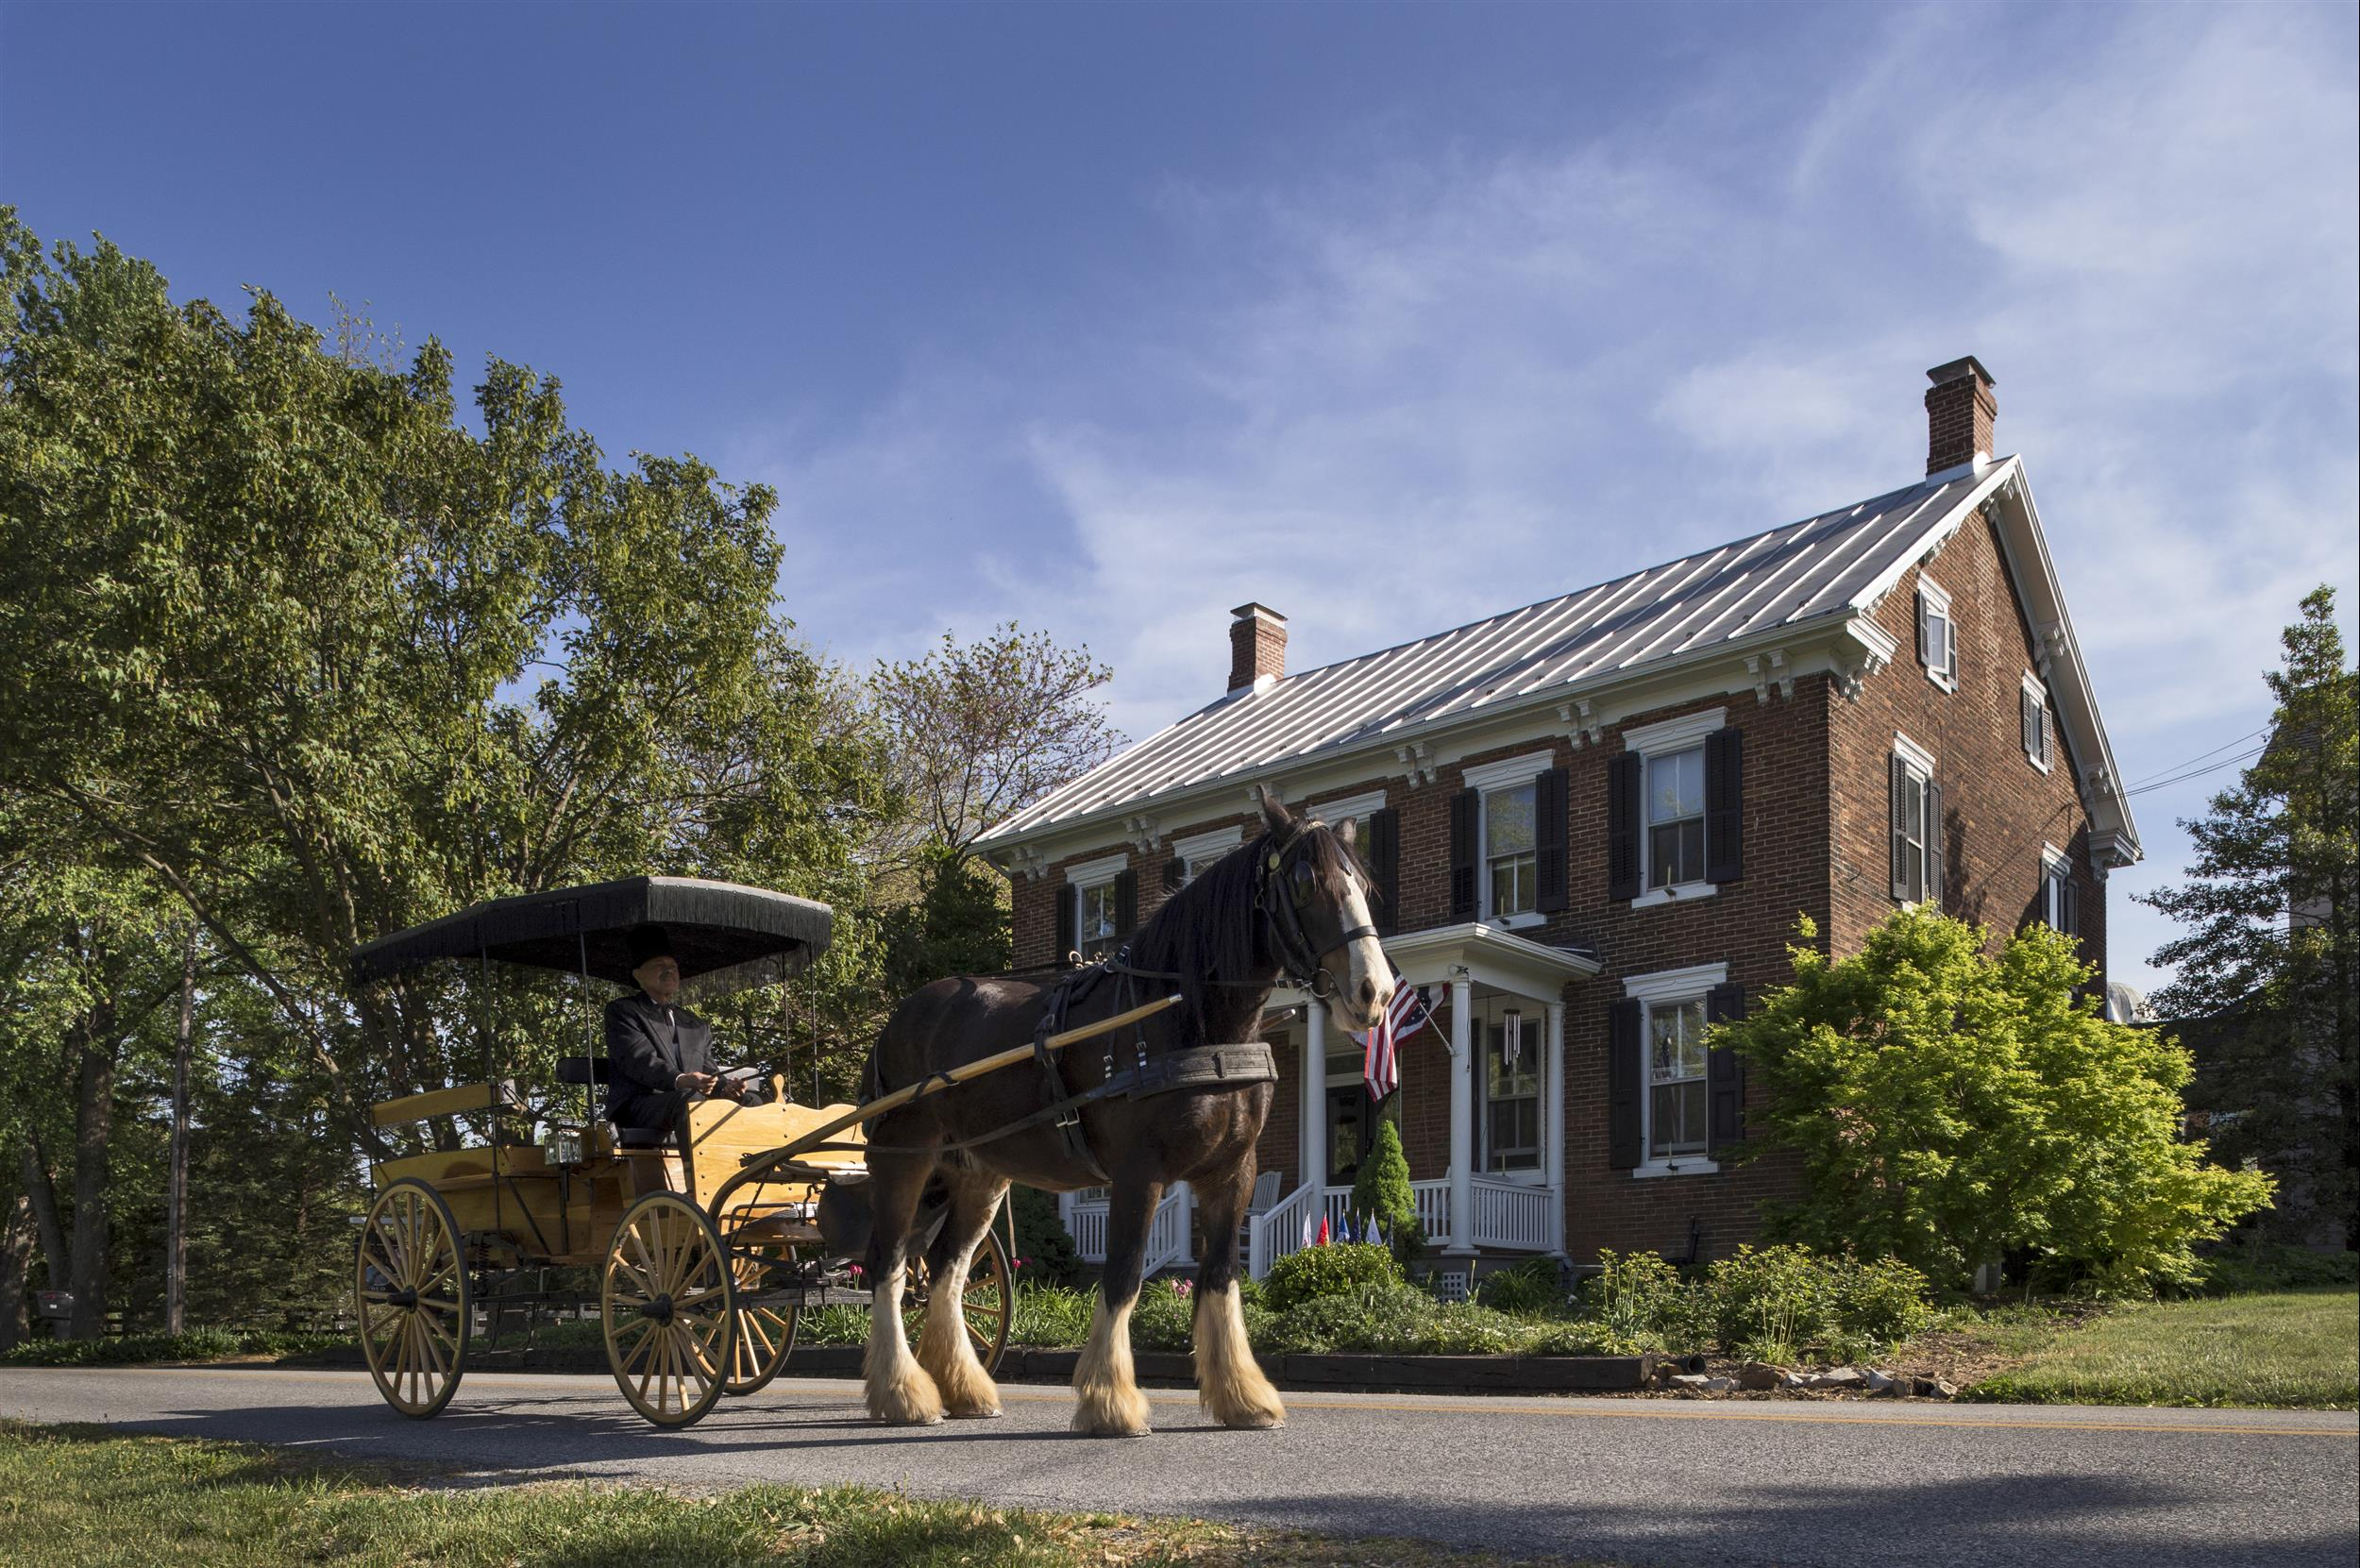 man-driving-horse-drawn-carriage-in-front-of-Inn.jpg